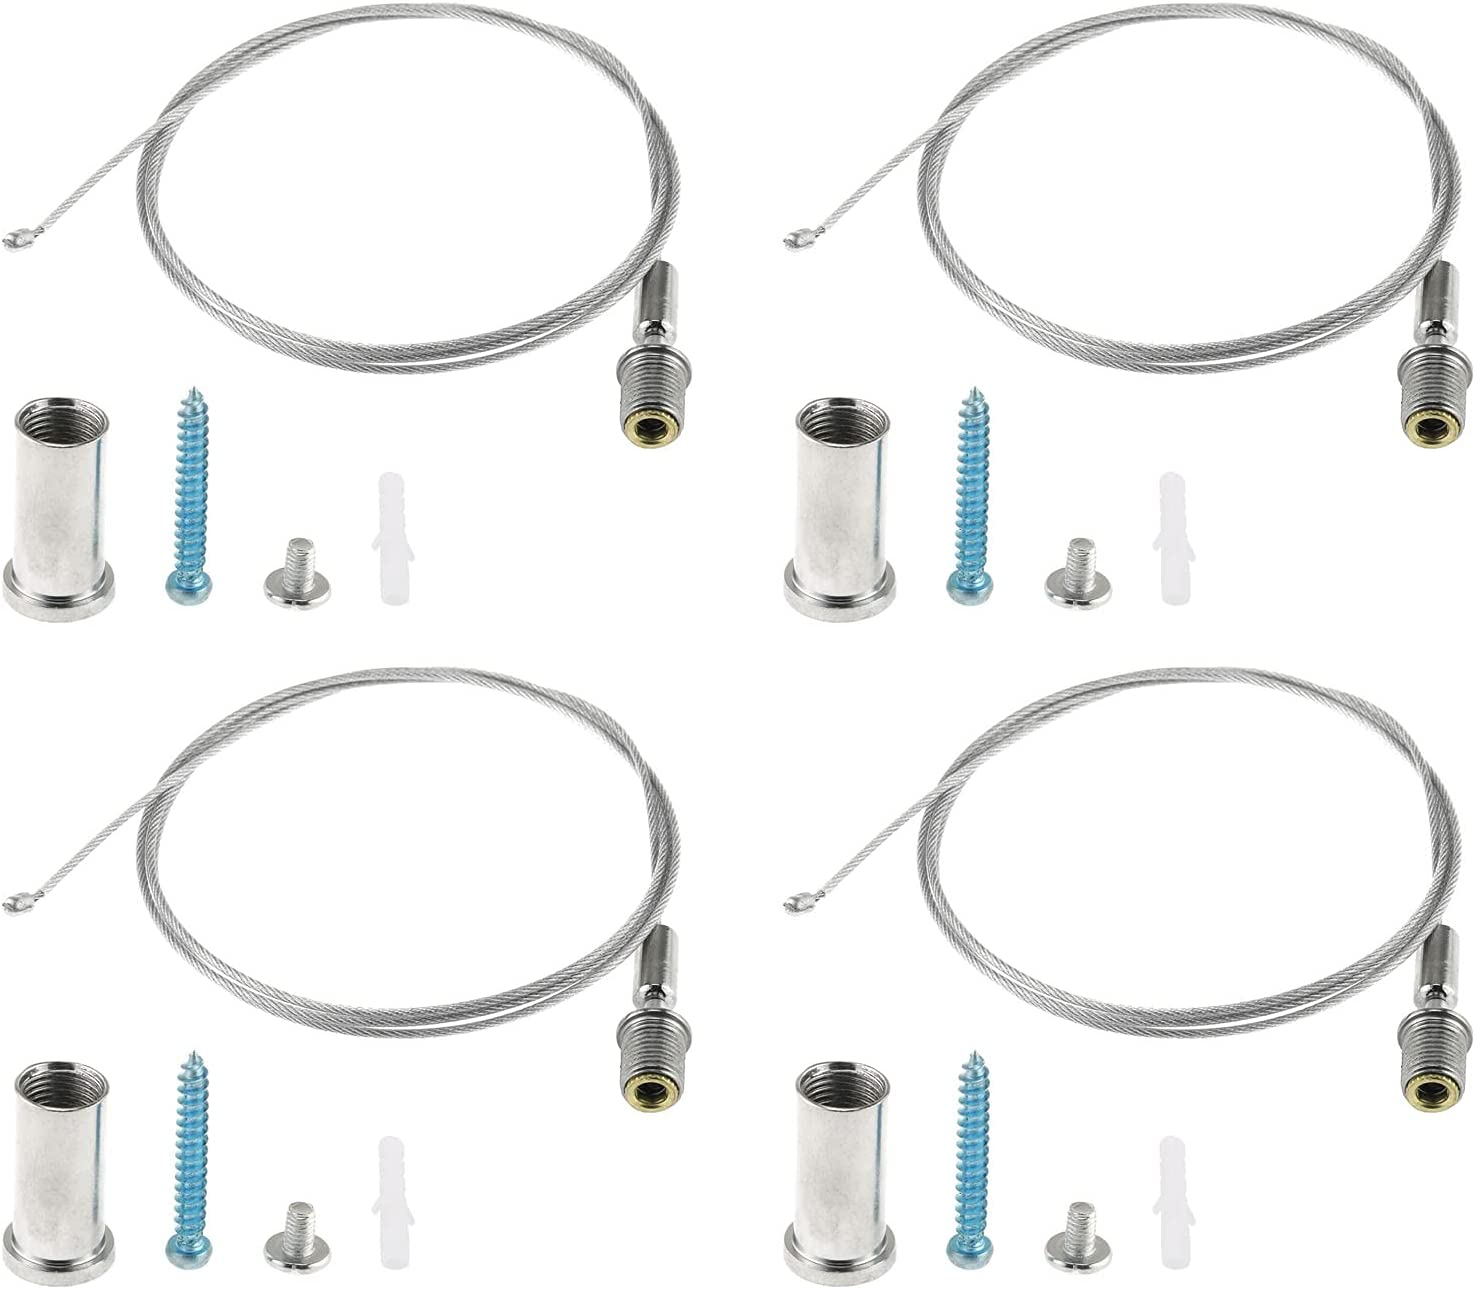 E-outstanding 4Pcs 1 Meter Lighting Kit Suspension Suspens Cable SEAL limited product Baltimore Mall